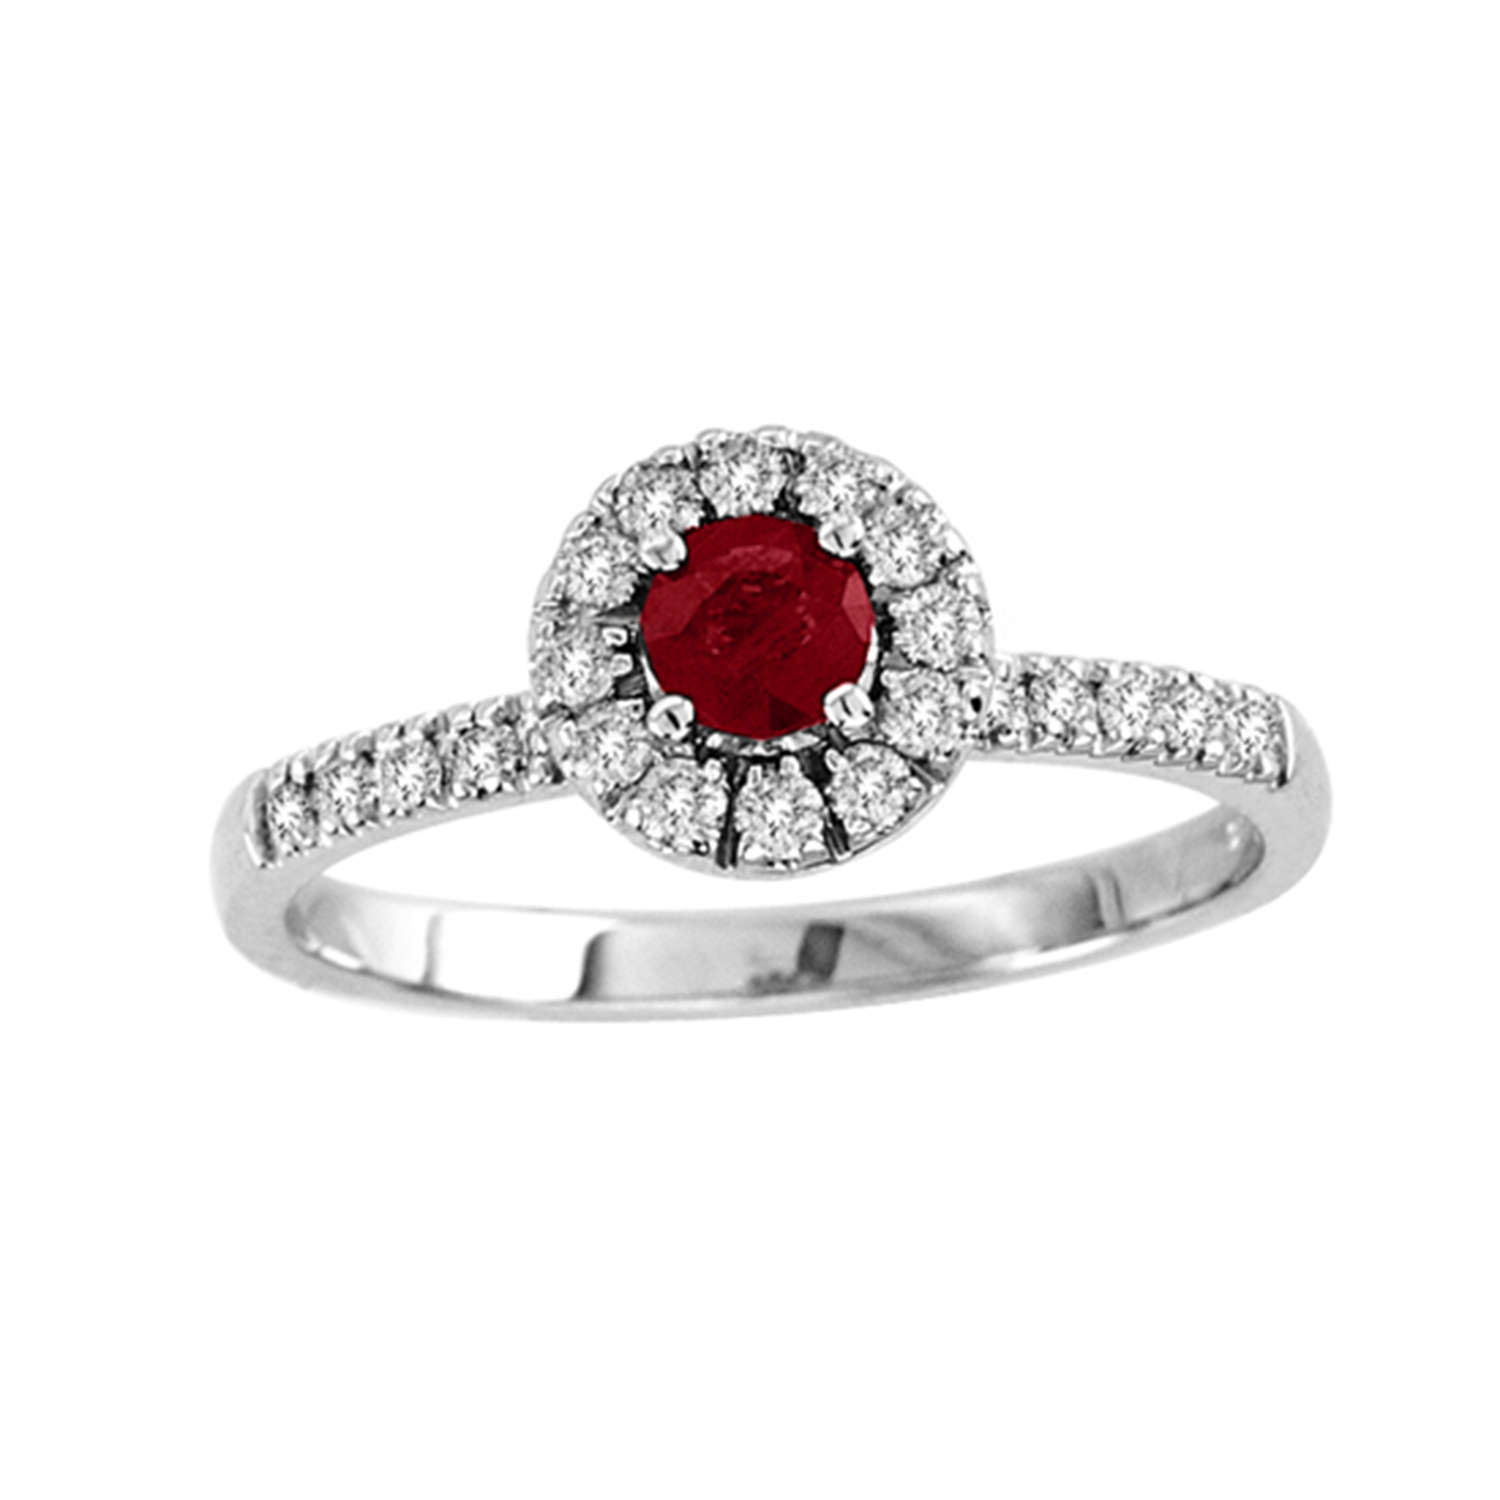 0.65cttw Natural Heated  Ruby and Diamond Halo Ring set in 14k Gold